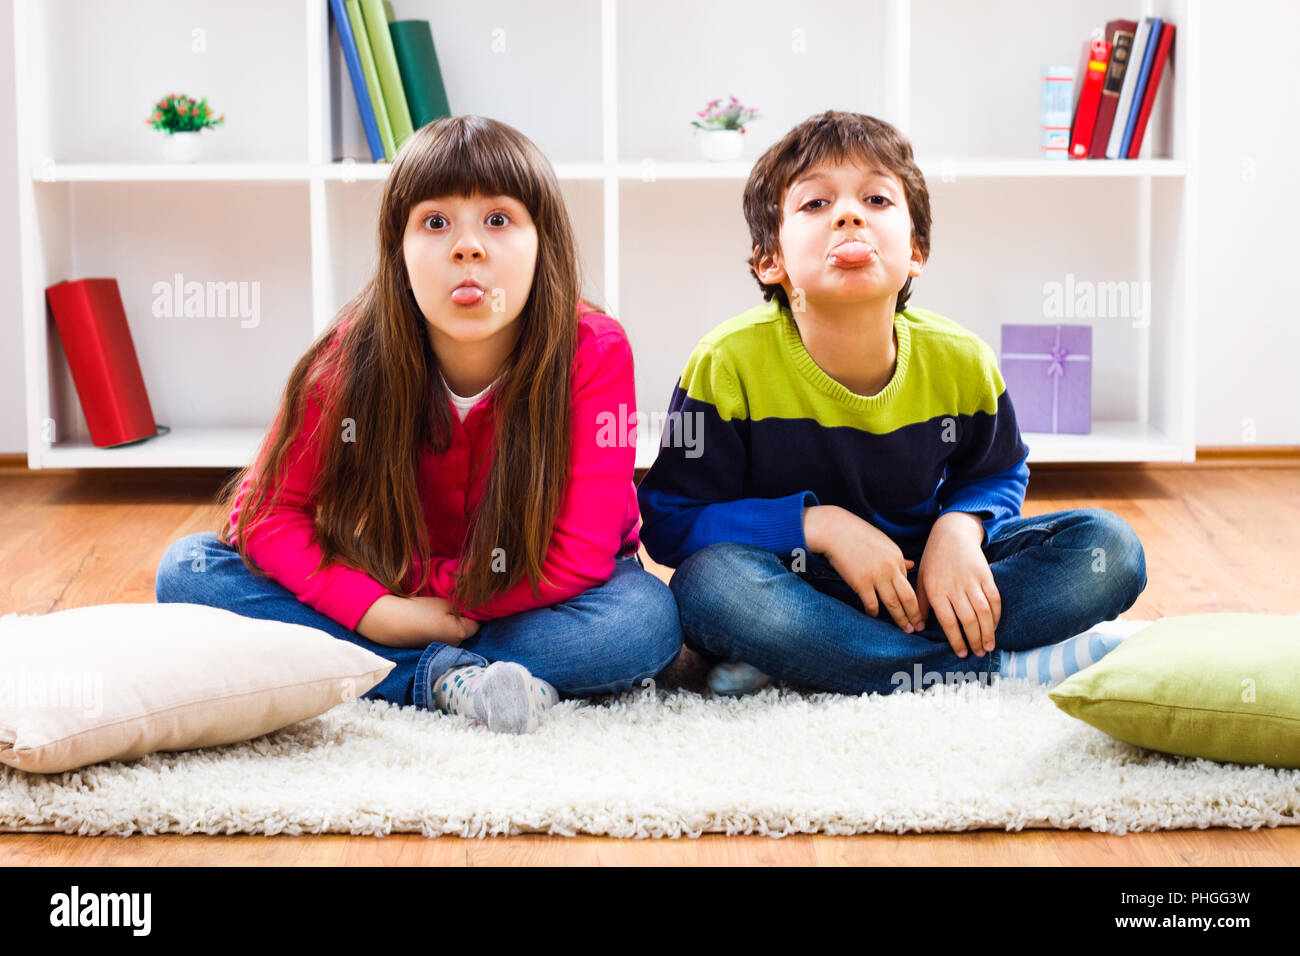 Children sticking out tongue - Stock Image